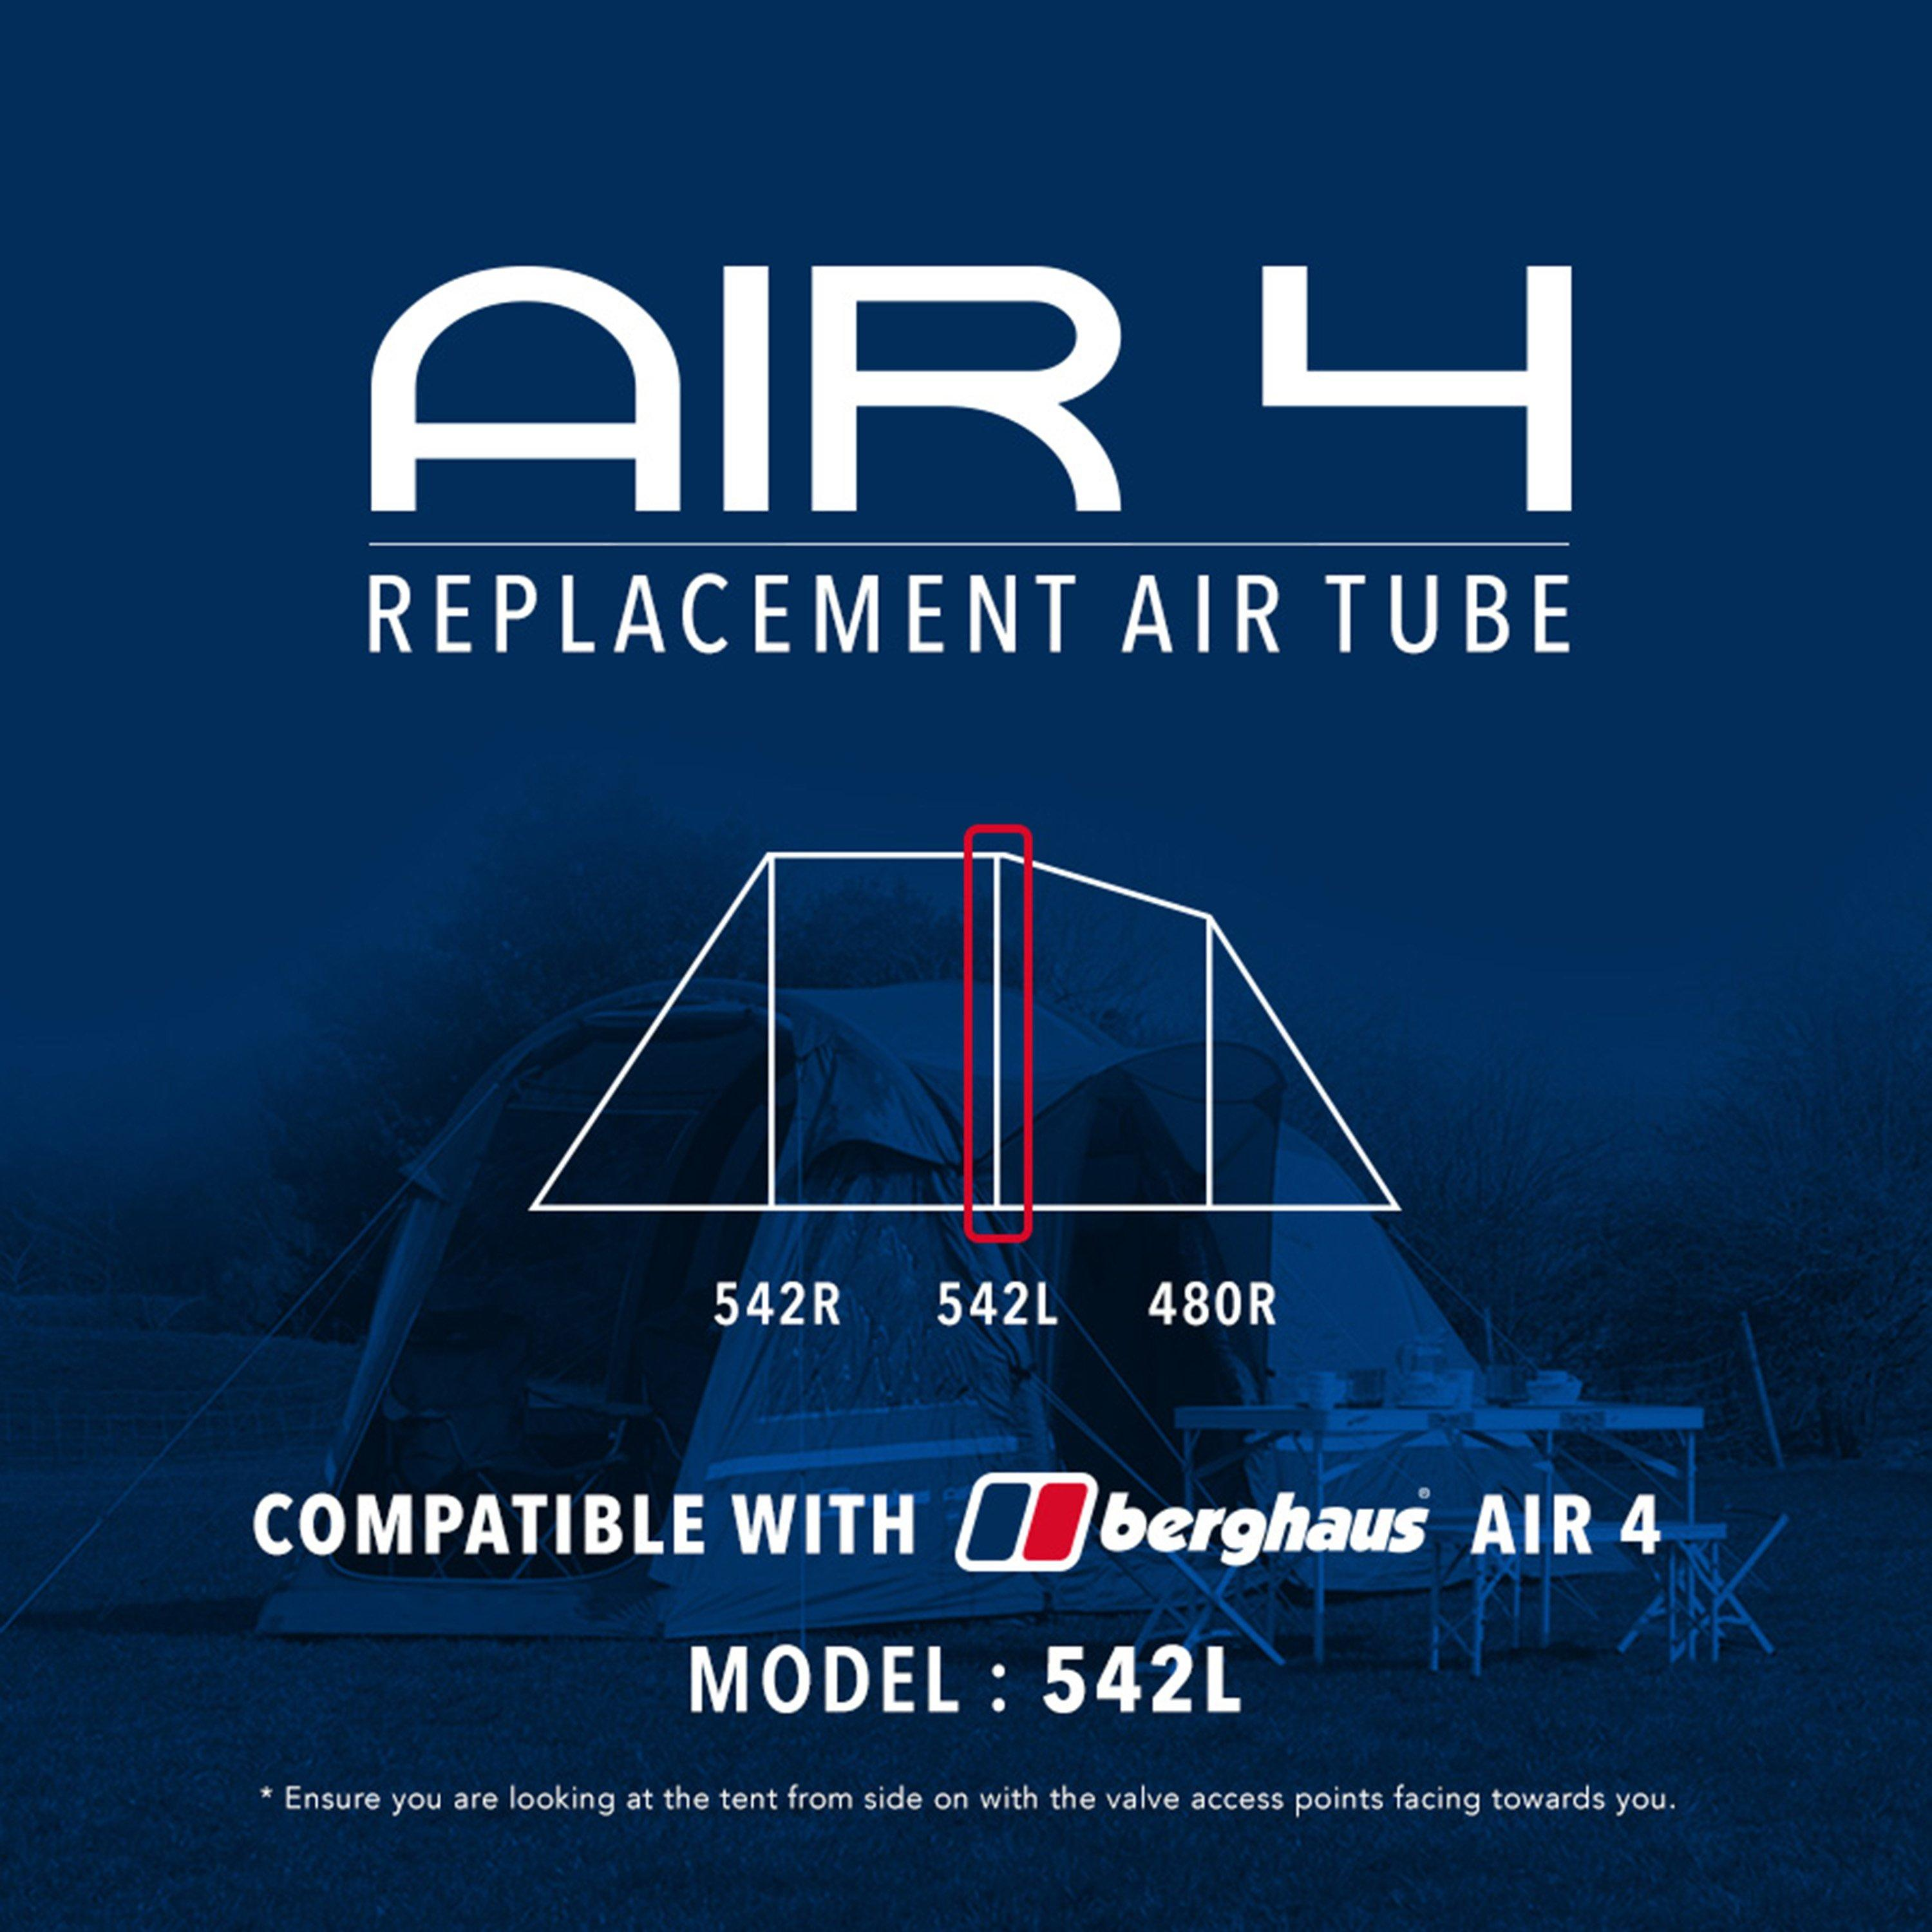 Eurohike Air 4 Tent Replacement Air Tube  542L Assorted